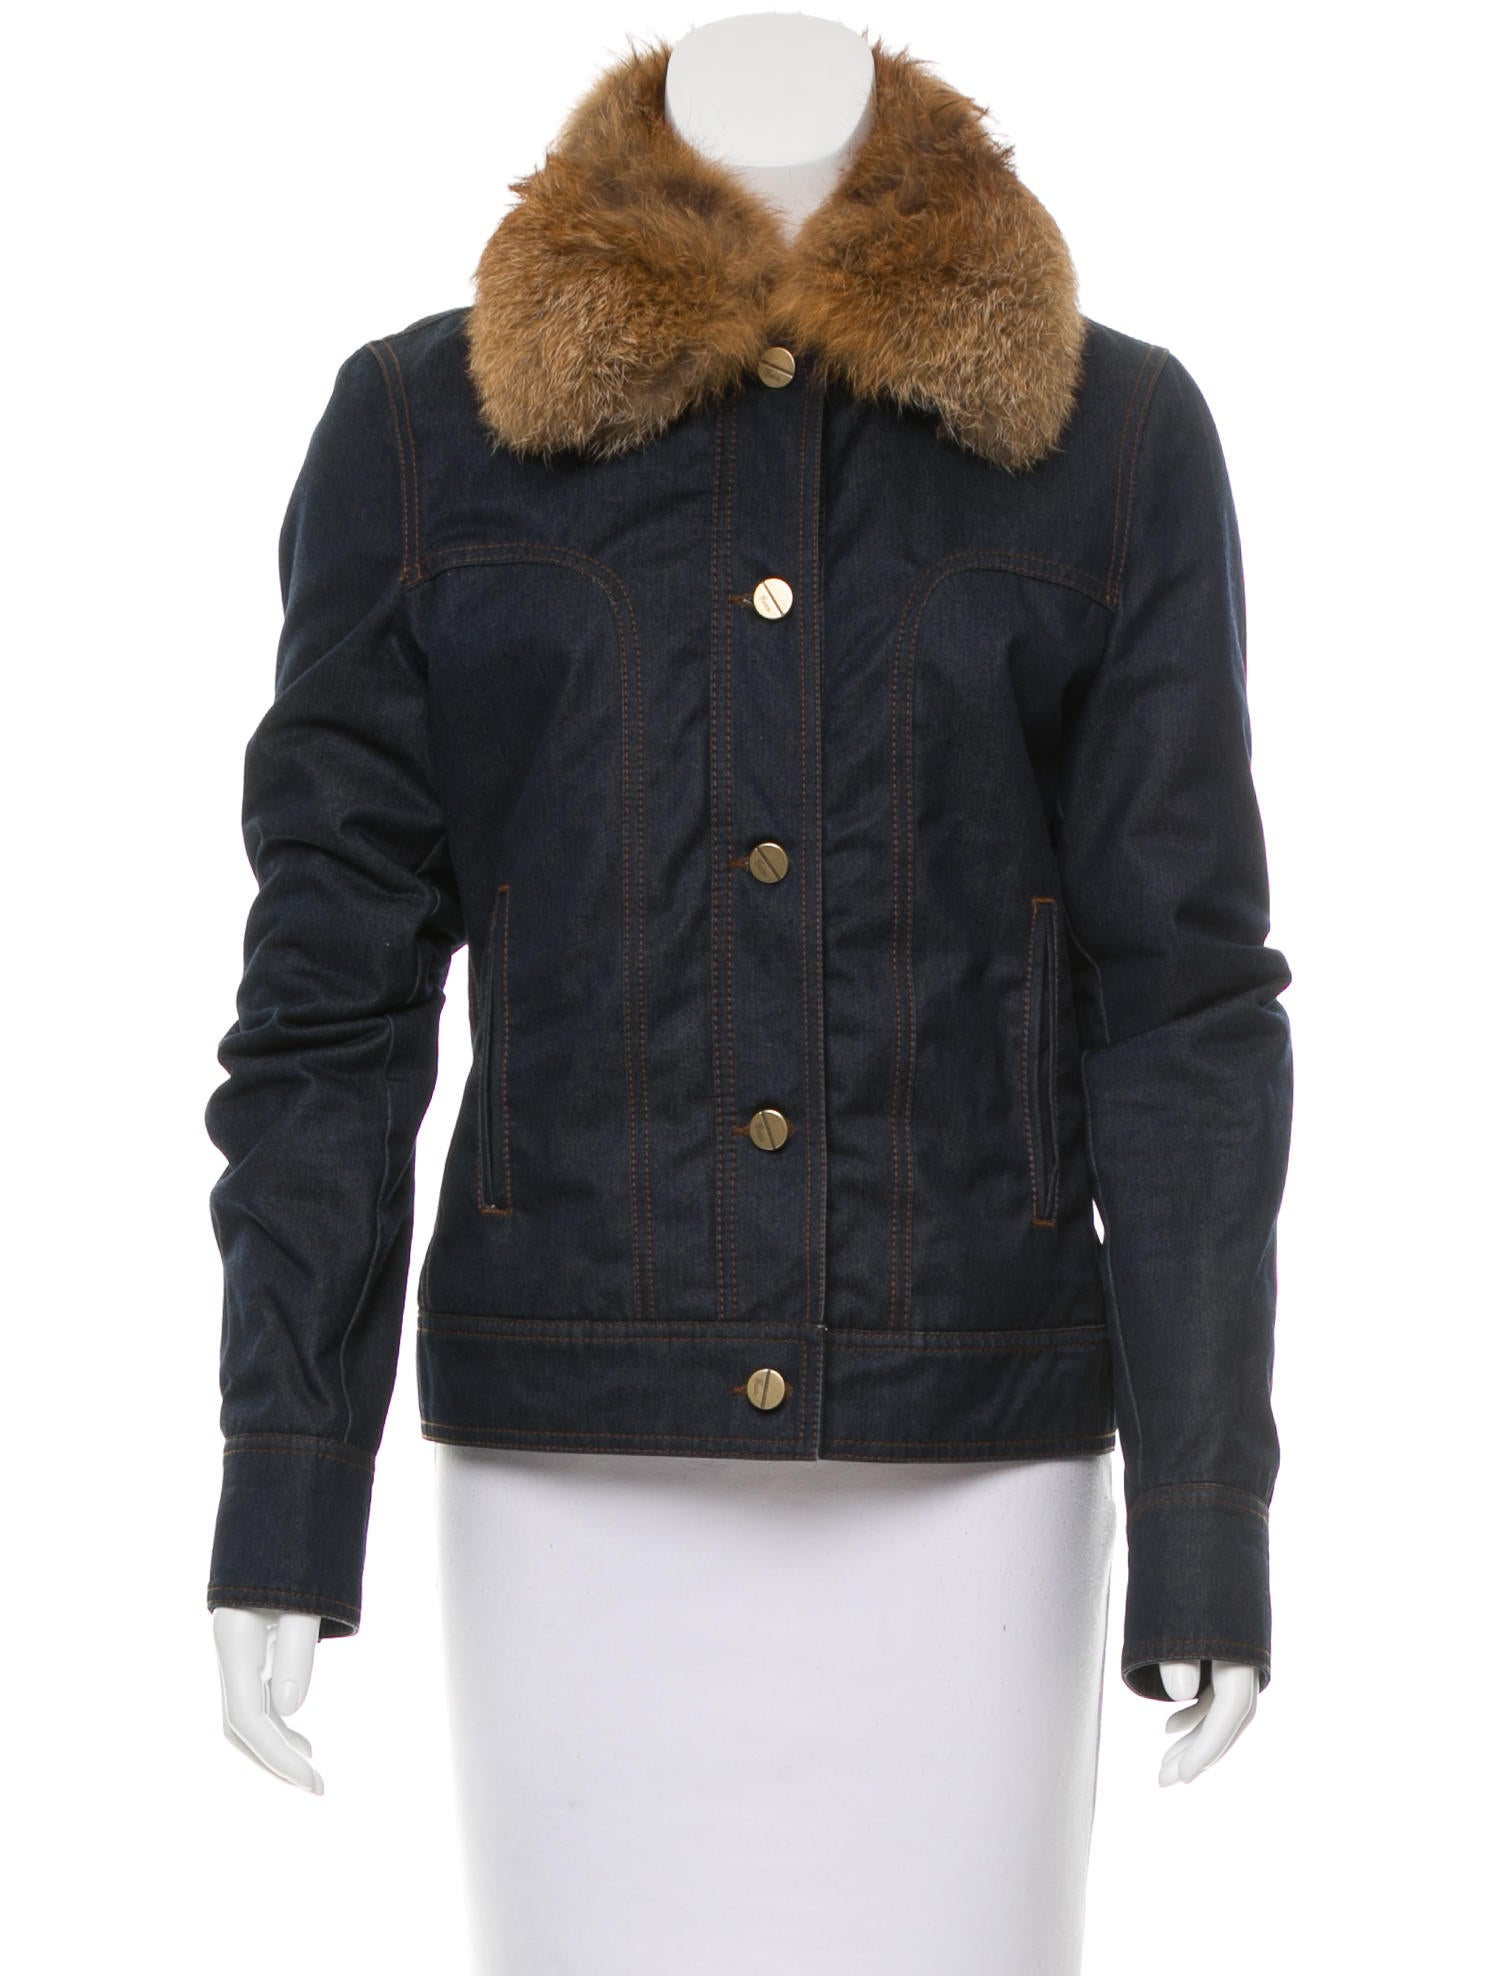 There are so many various stylish ideas for casual outfits, for example, you can combine a light blue fur collar denim jacket with a red and black plaid button down shirt, gray skinny jeans and black patent leather mid calf boots. Or you can take a gray t-shirt, loose jeans, duck boots and a brown suede flat cap.